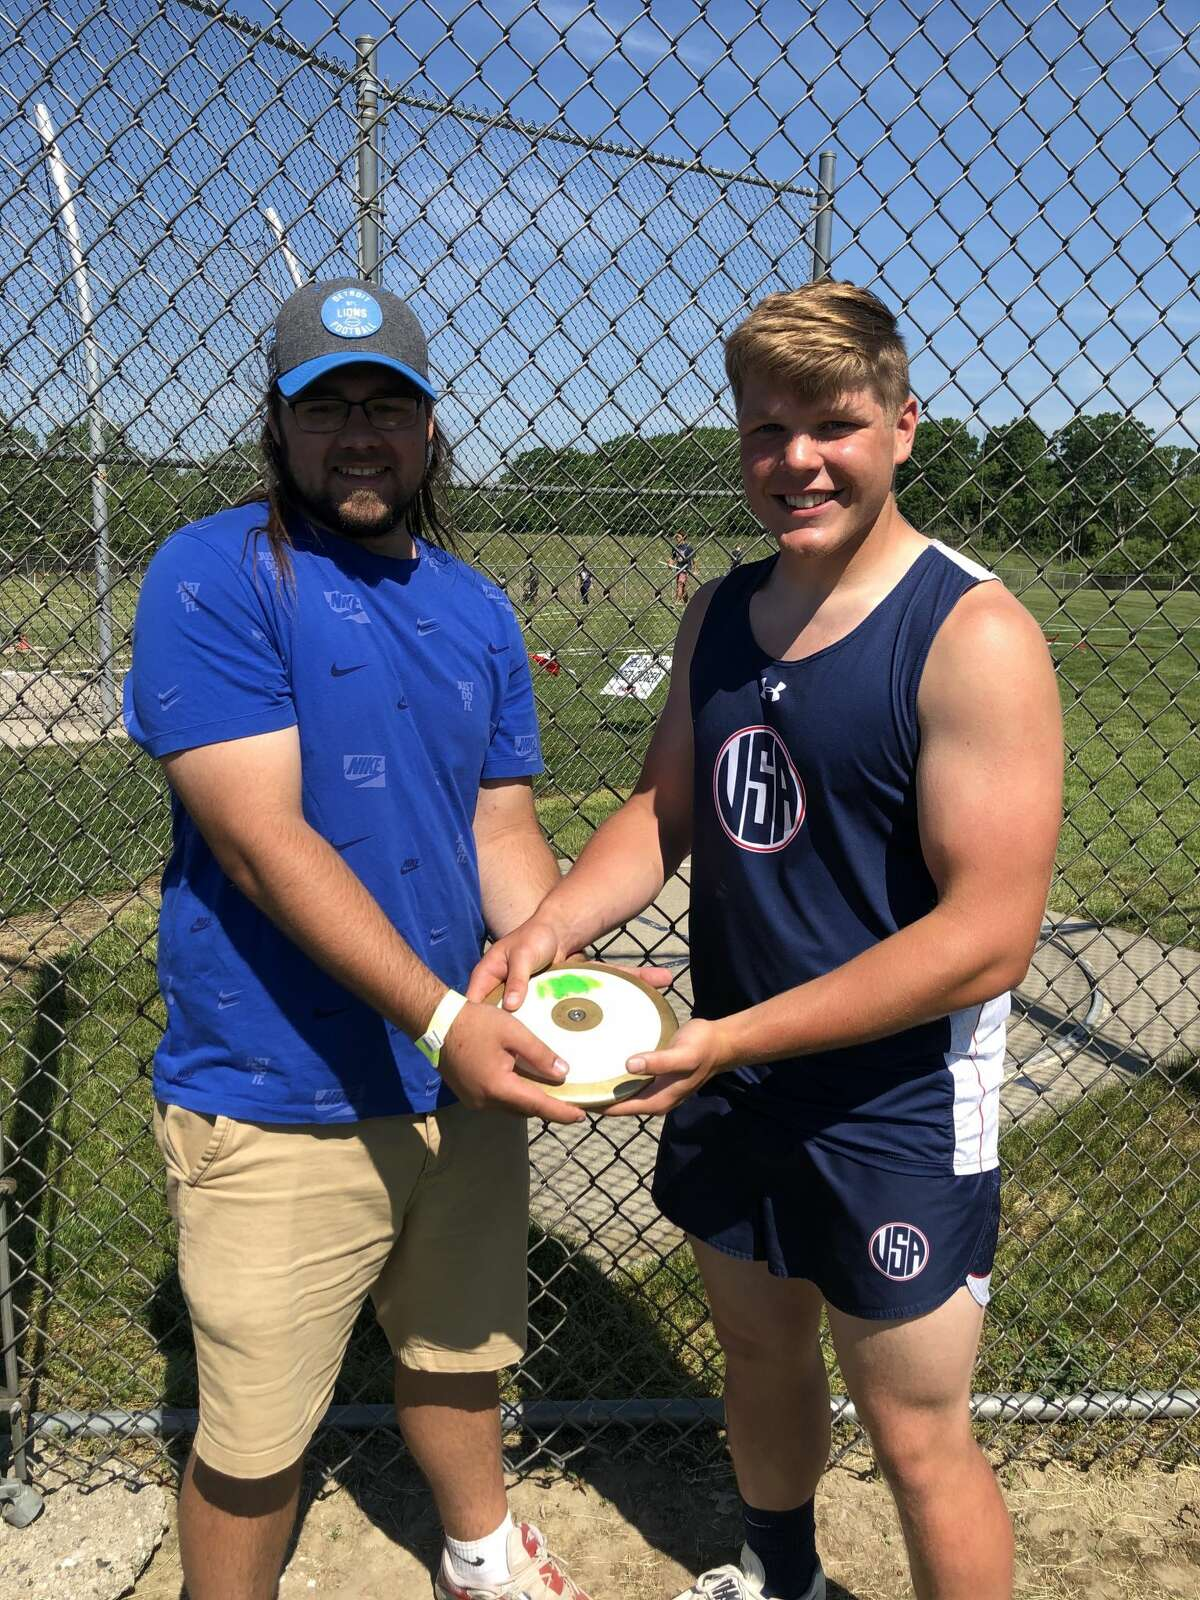 Jacob Nimtz of the Unionville-Sebewaing Area track team poses with his throws coach, Glenn Shook.